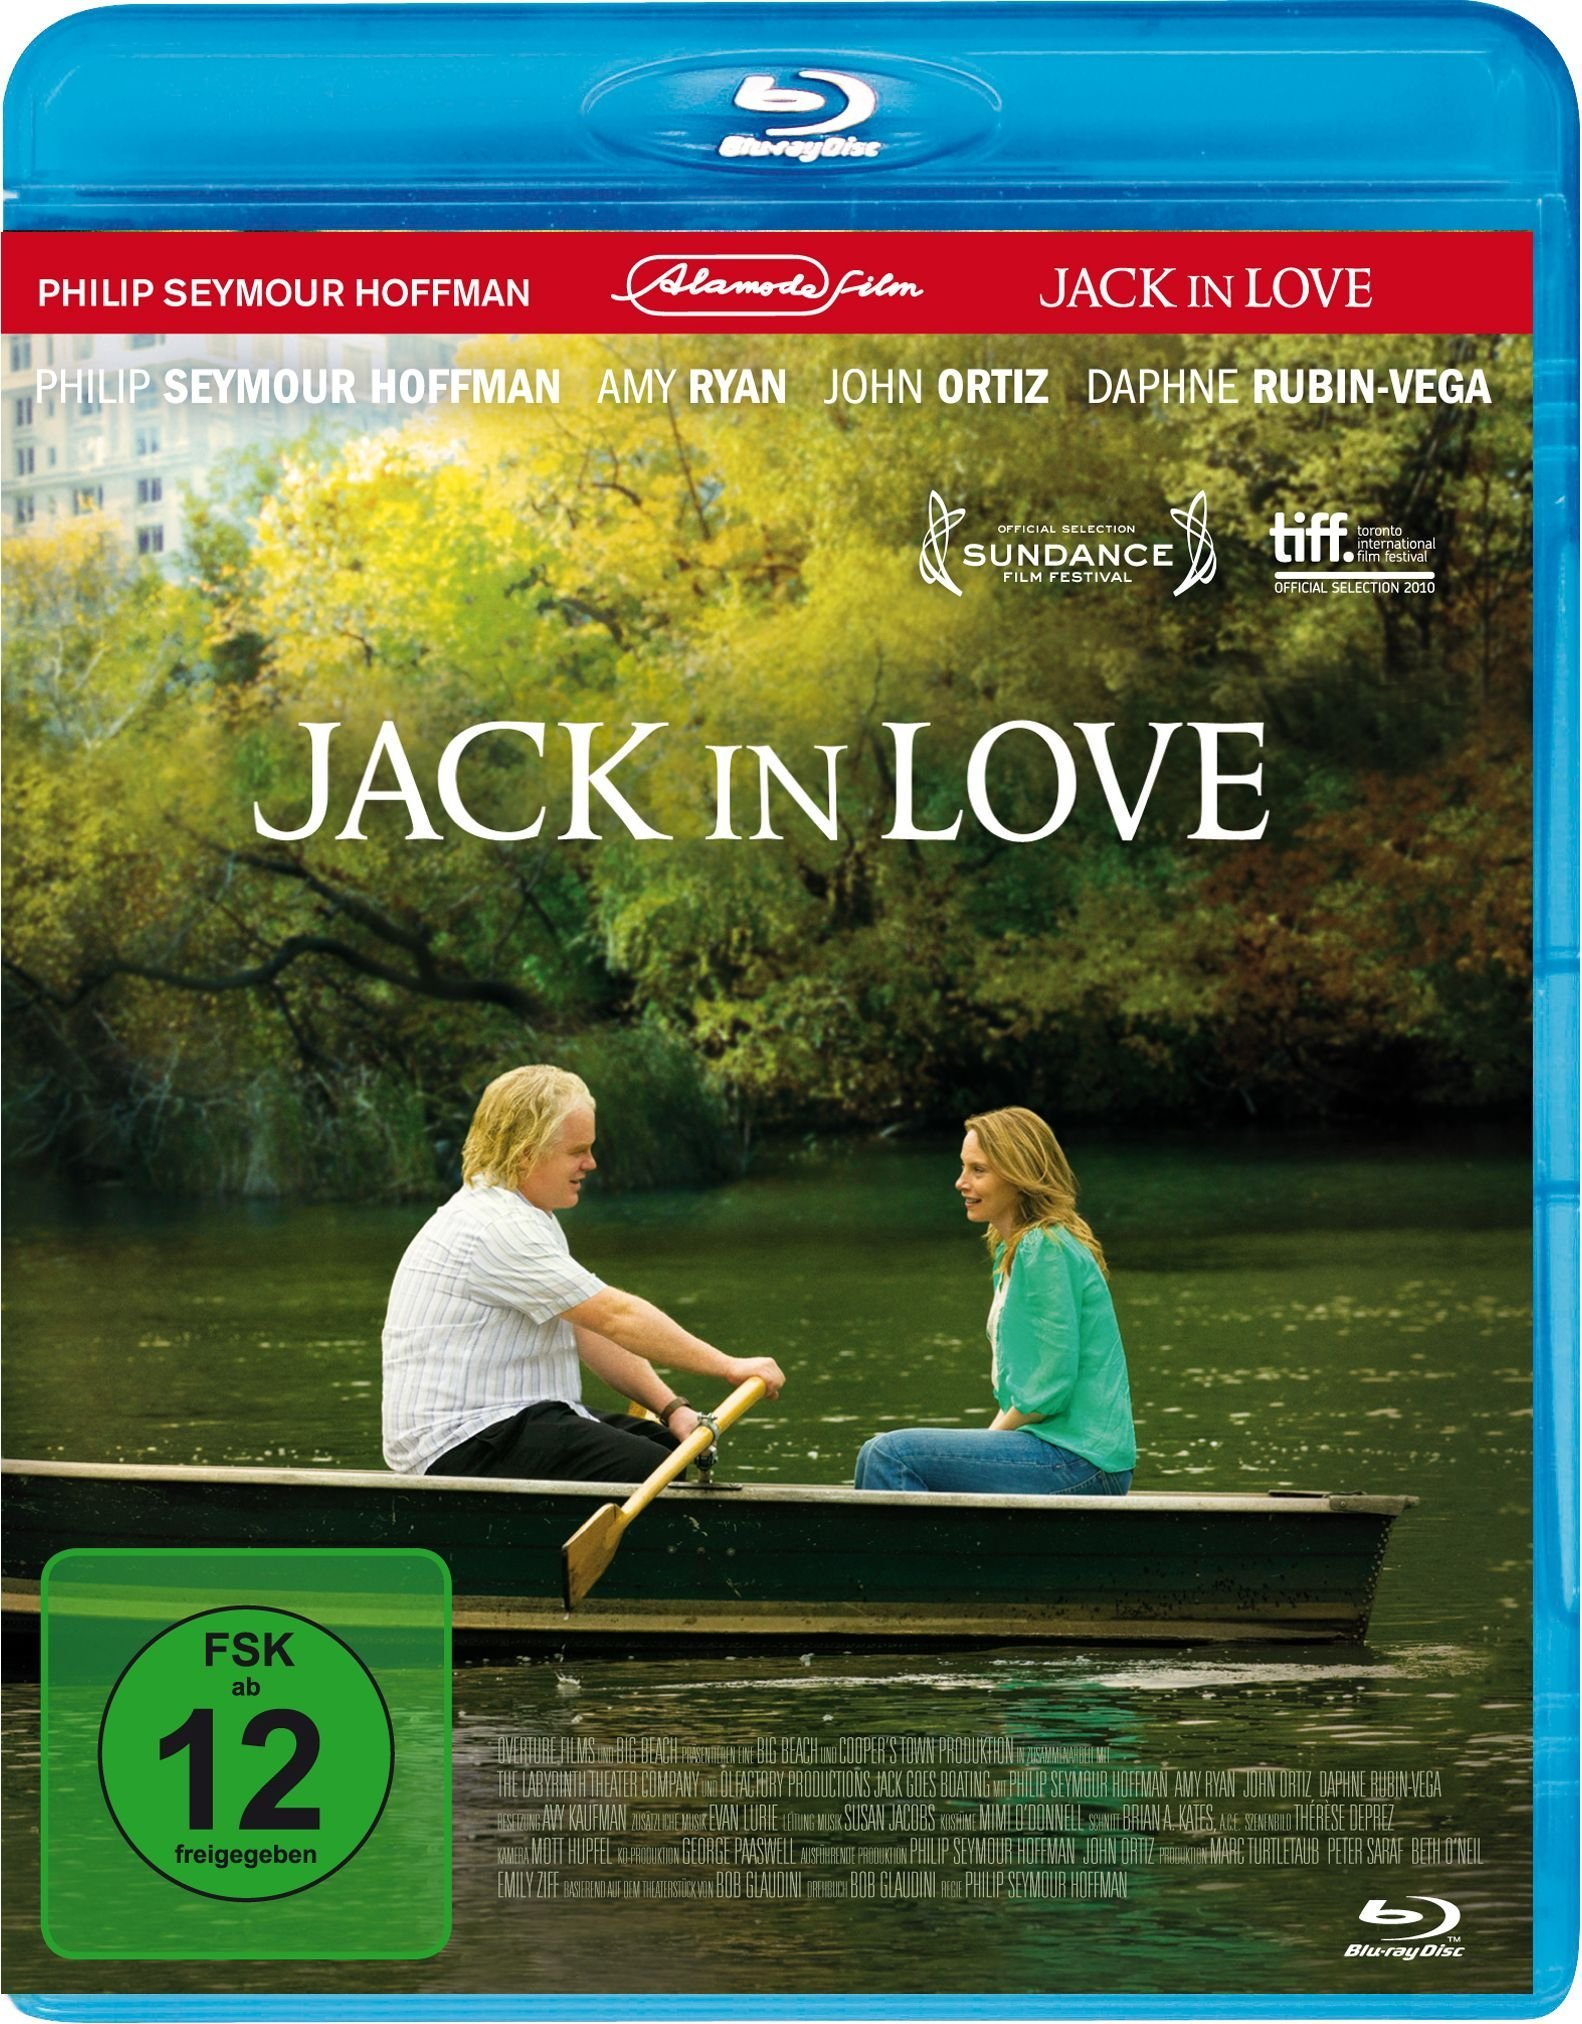 Image of Jack in Love